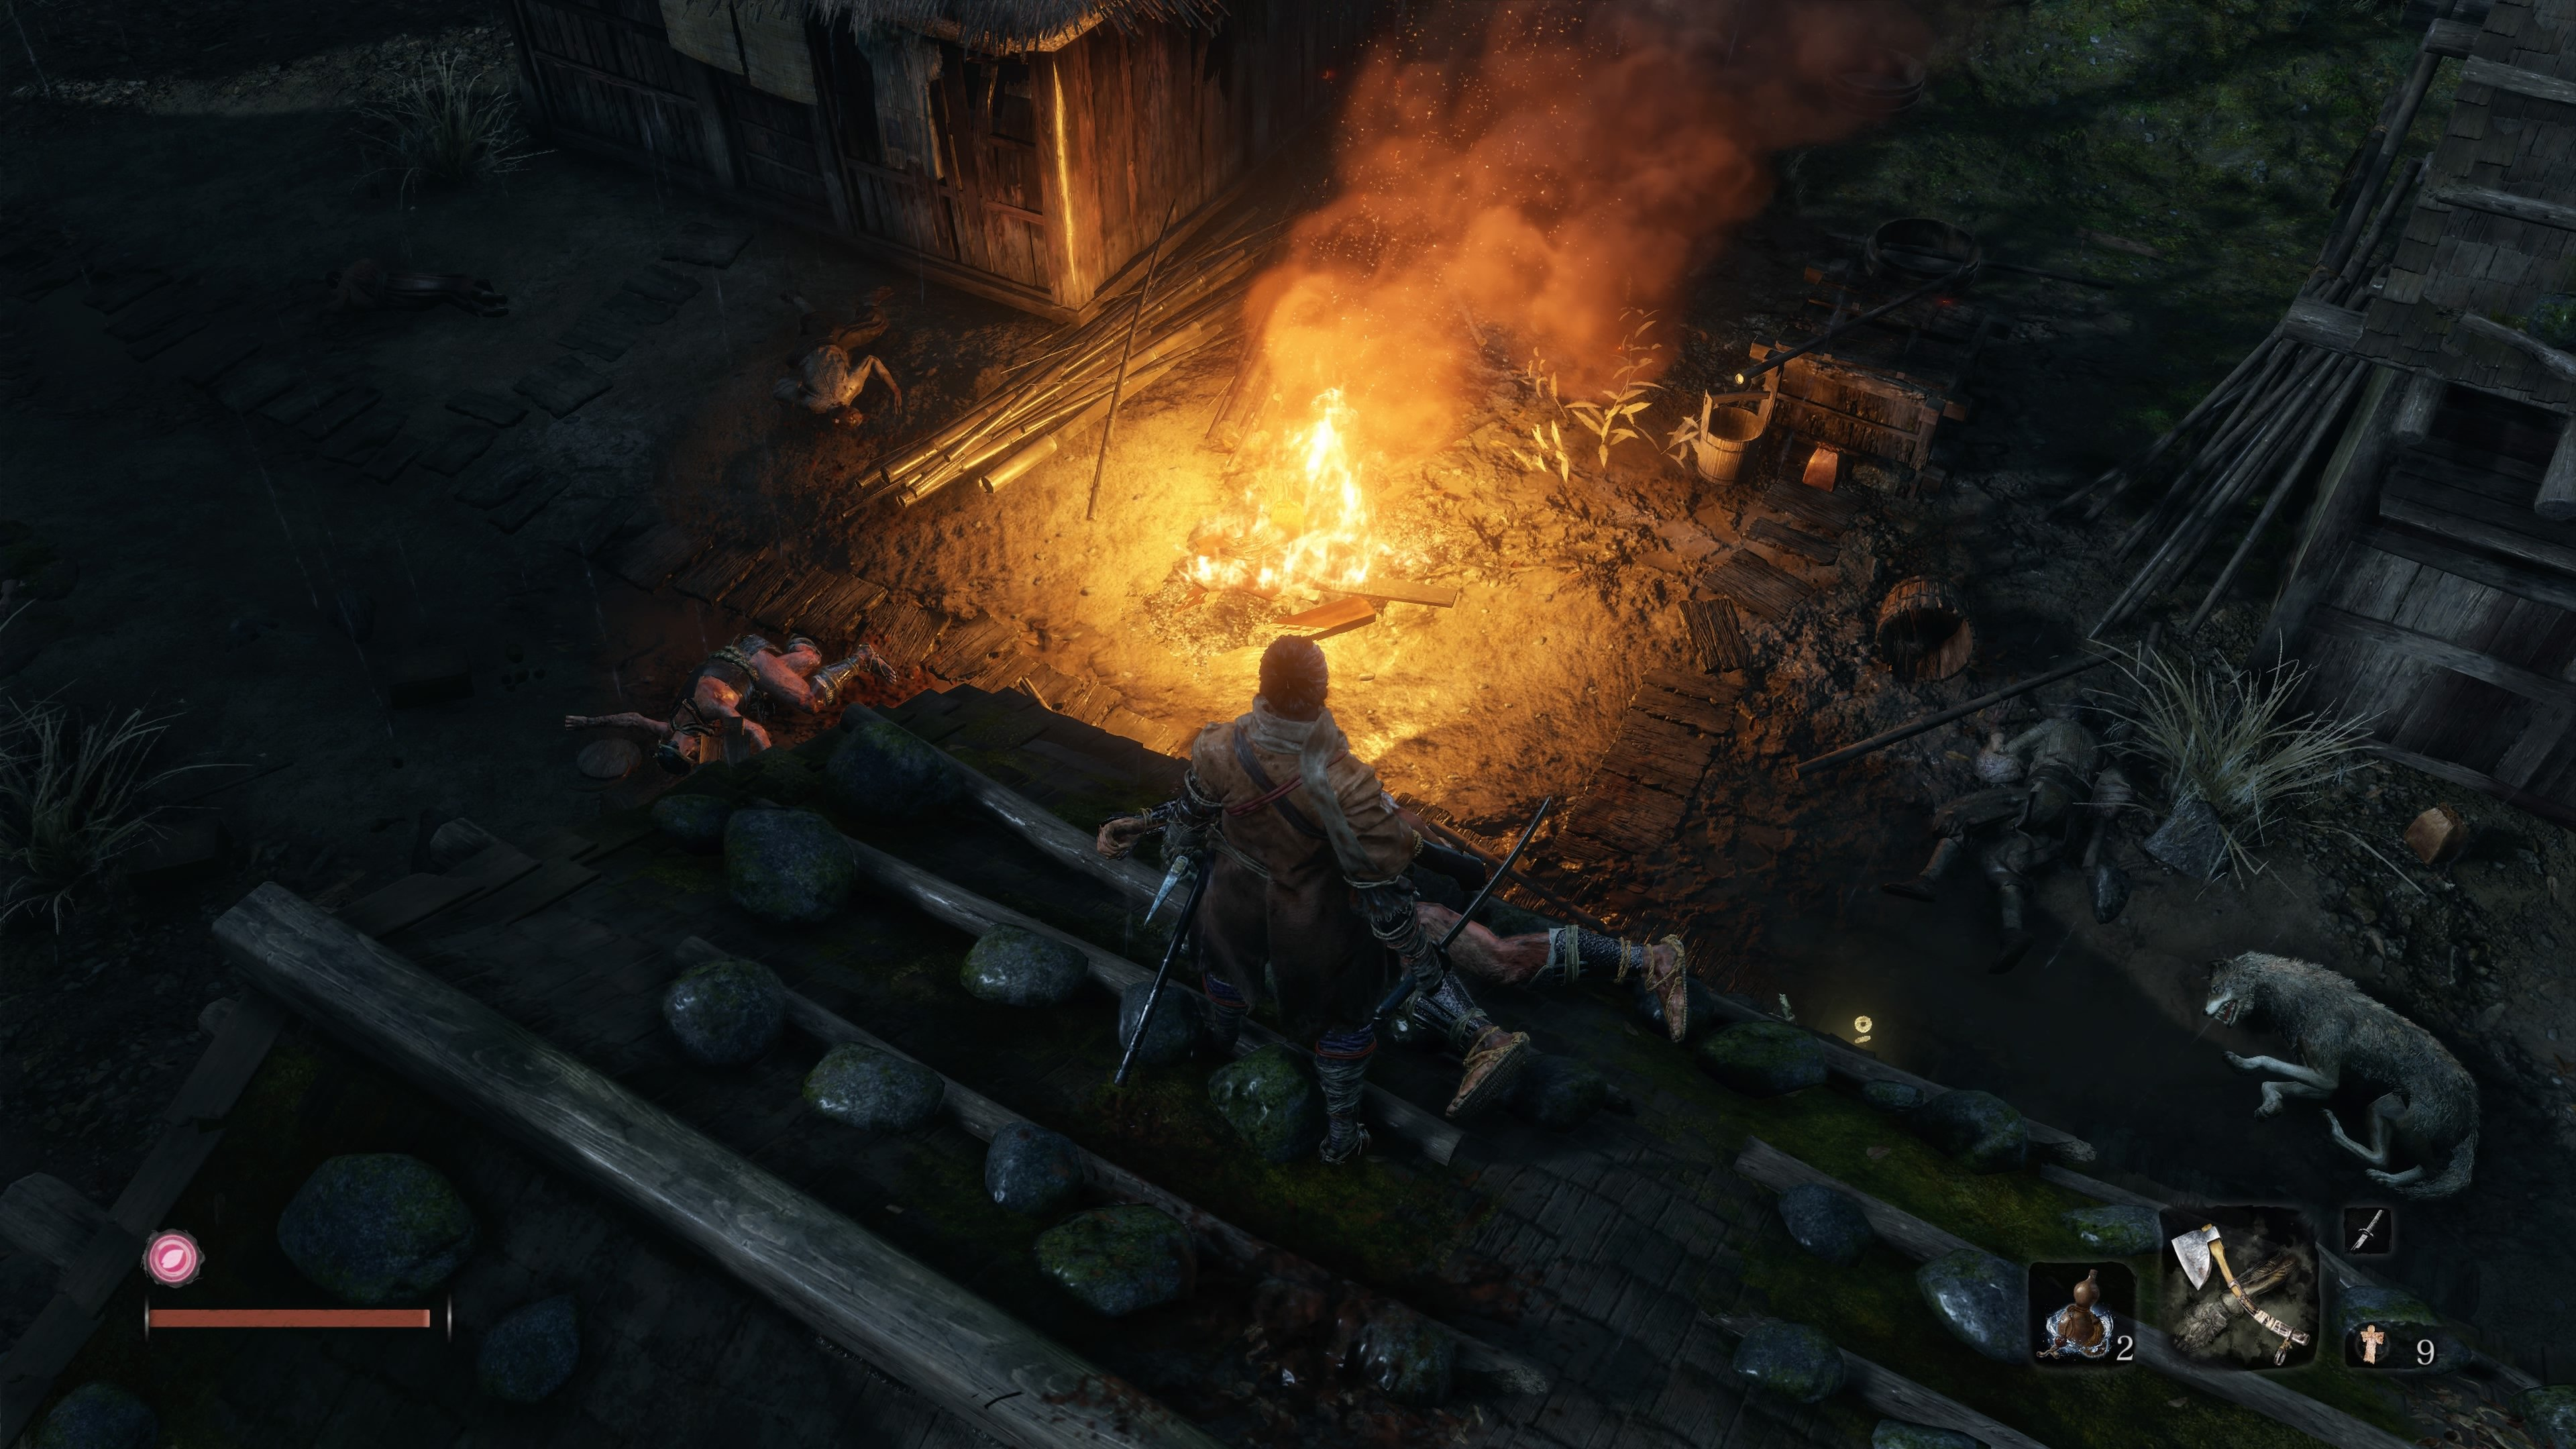 Where to find the Flame Vent Sekiro Shadows Die Twice